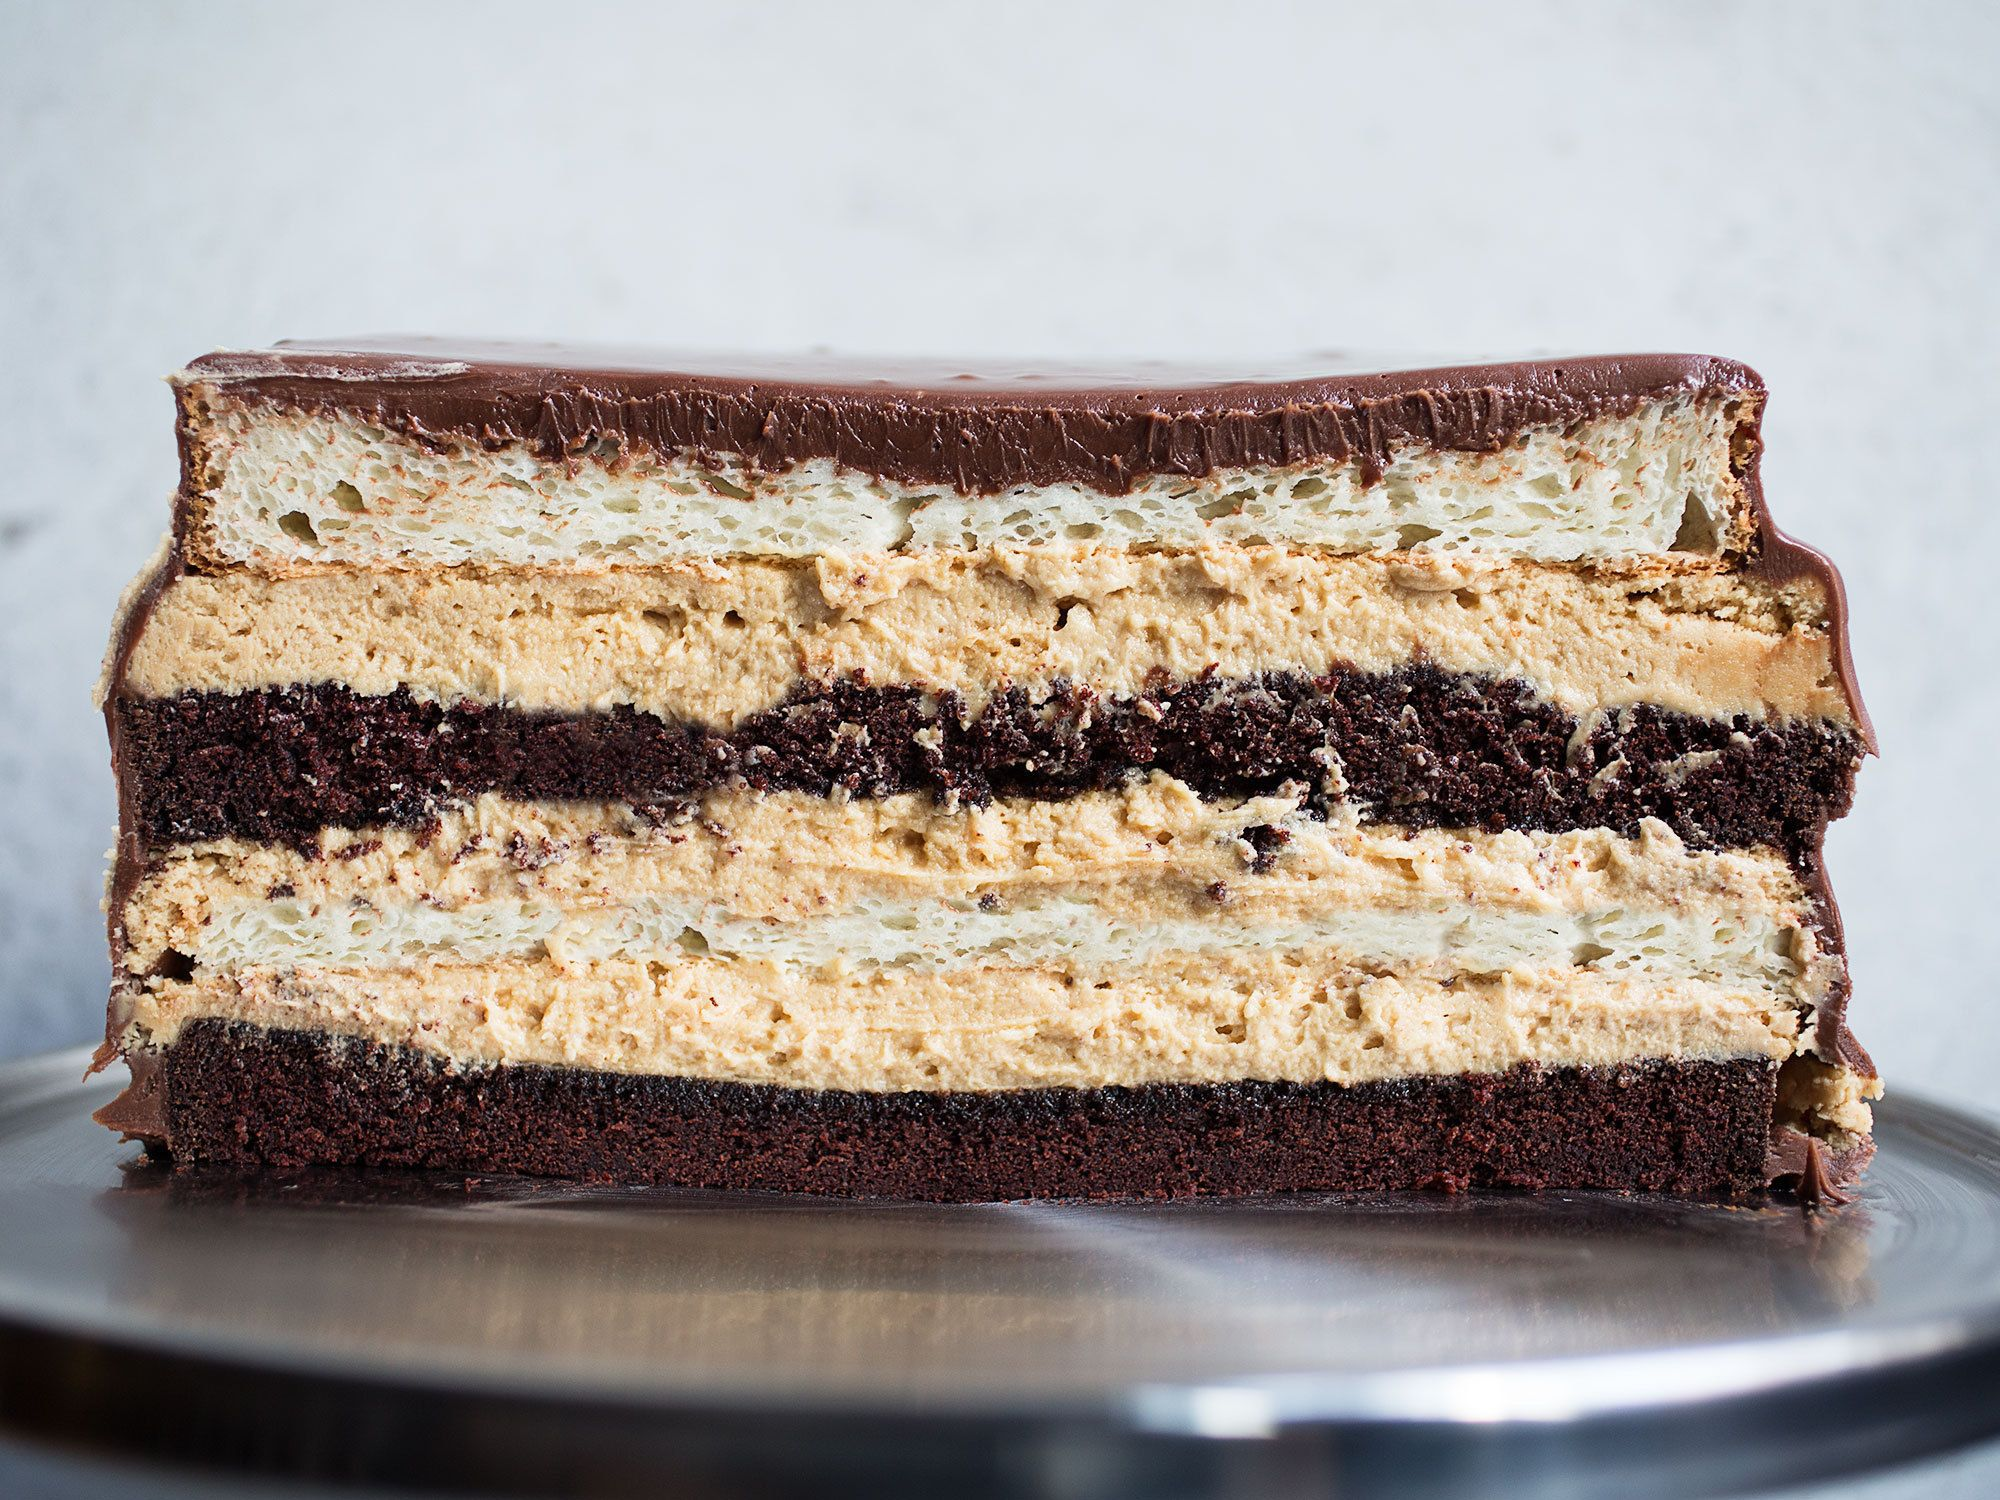 21 Of Our Best Birthday Cake Recipes For Your Party